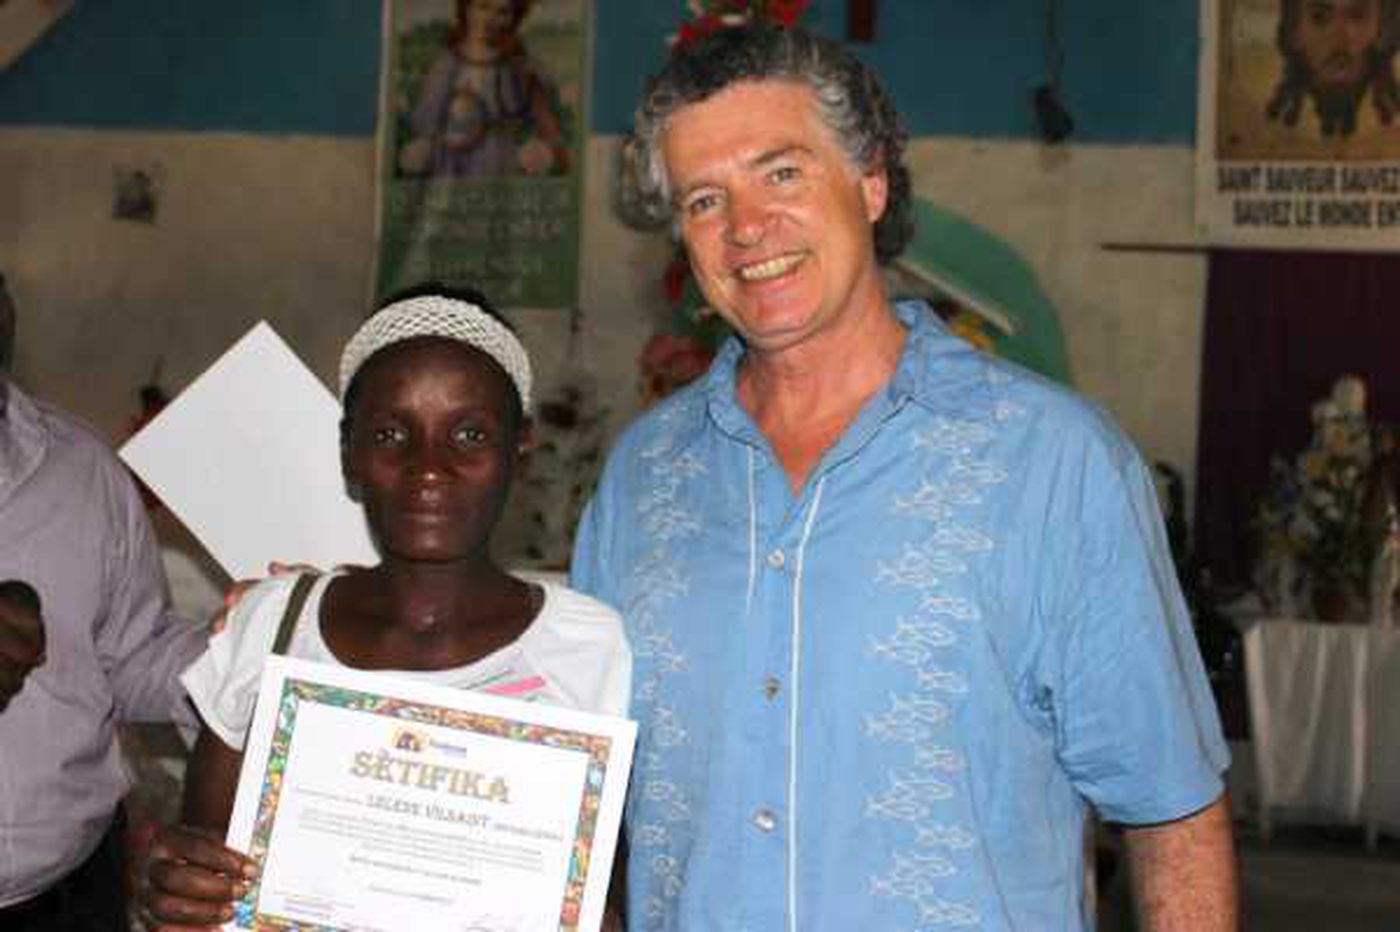 Retired music producer now plays in tune with Haiti microfinance nonprofit Fonkoze